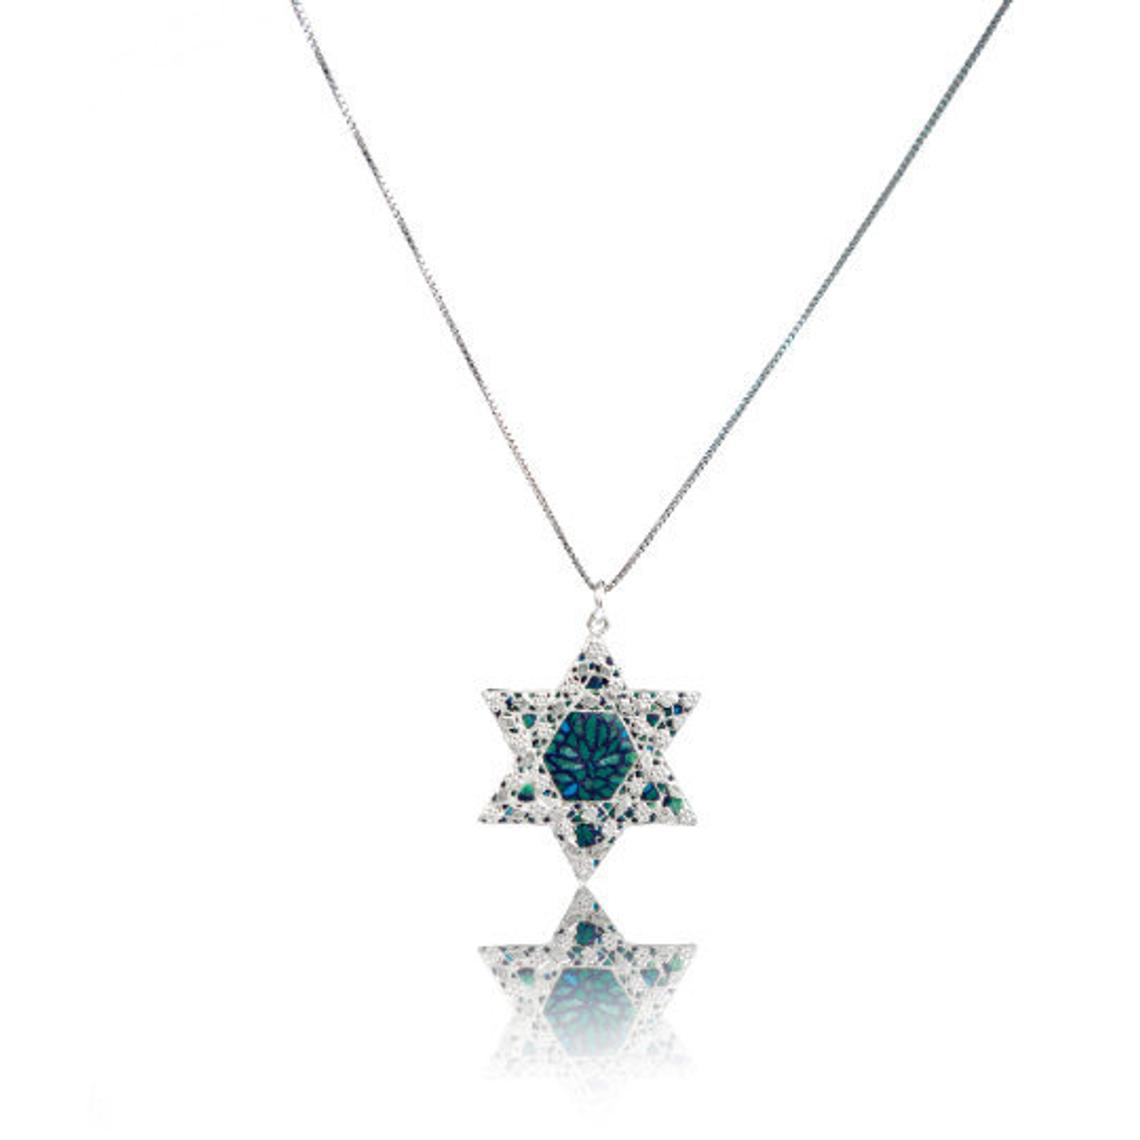 Green Star of David Necklace 925 Sterling Silver, Israeli Jewelry